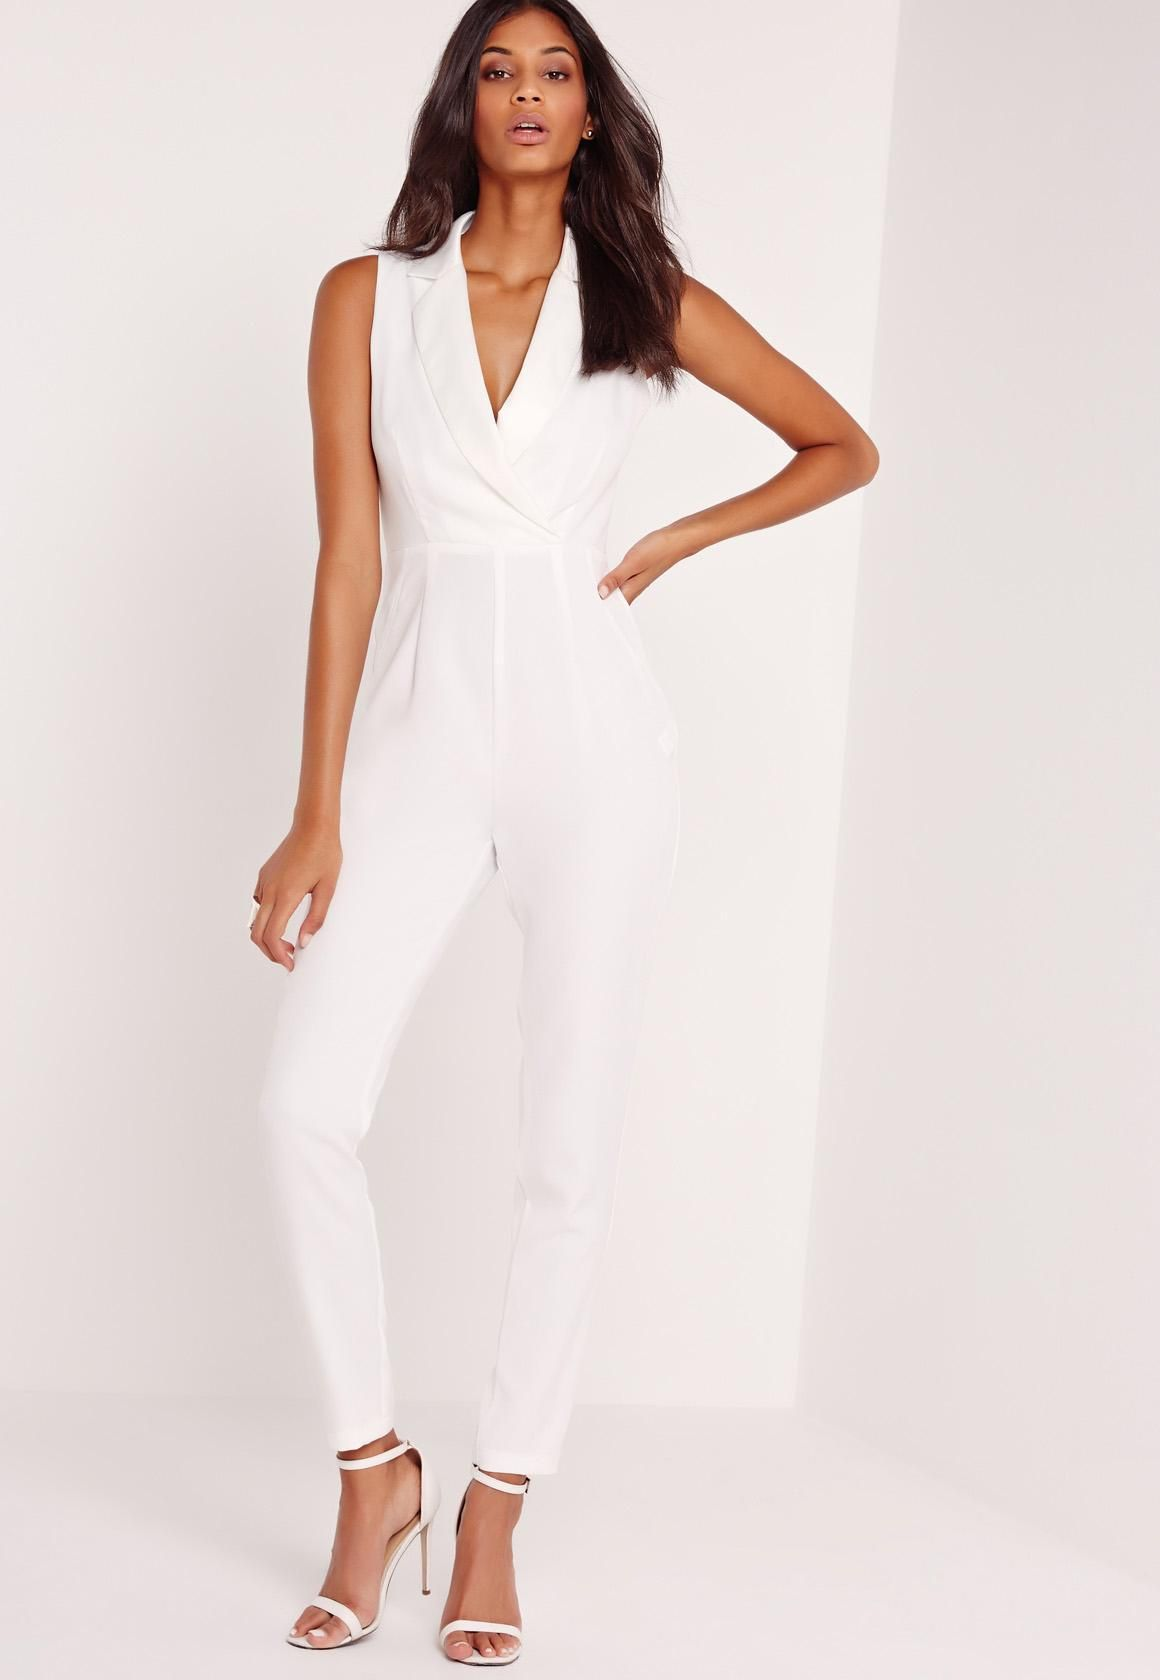 aa780fdba Awesome White Jumpsuit : Enticing White Jumpsuit Look Trabalho, Macacões De  Grife, Jantar Roupas